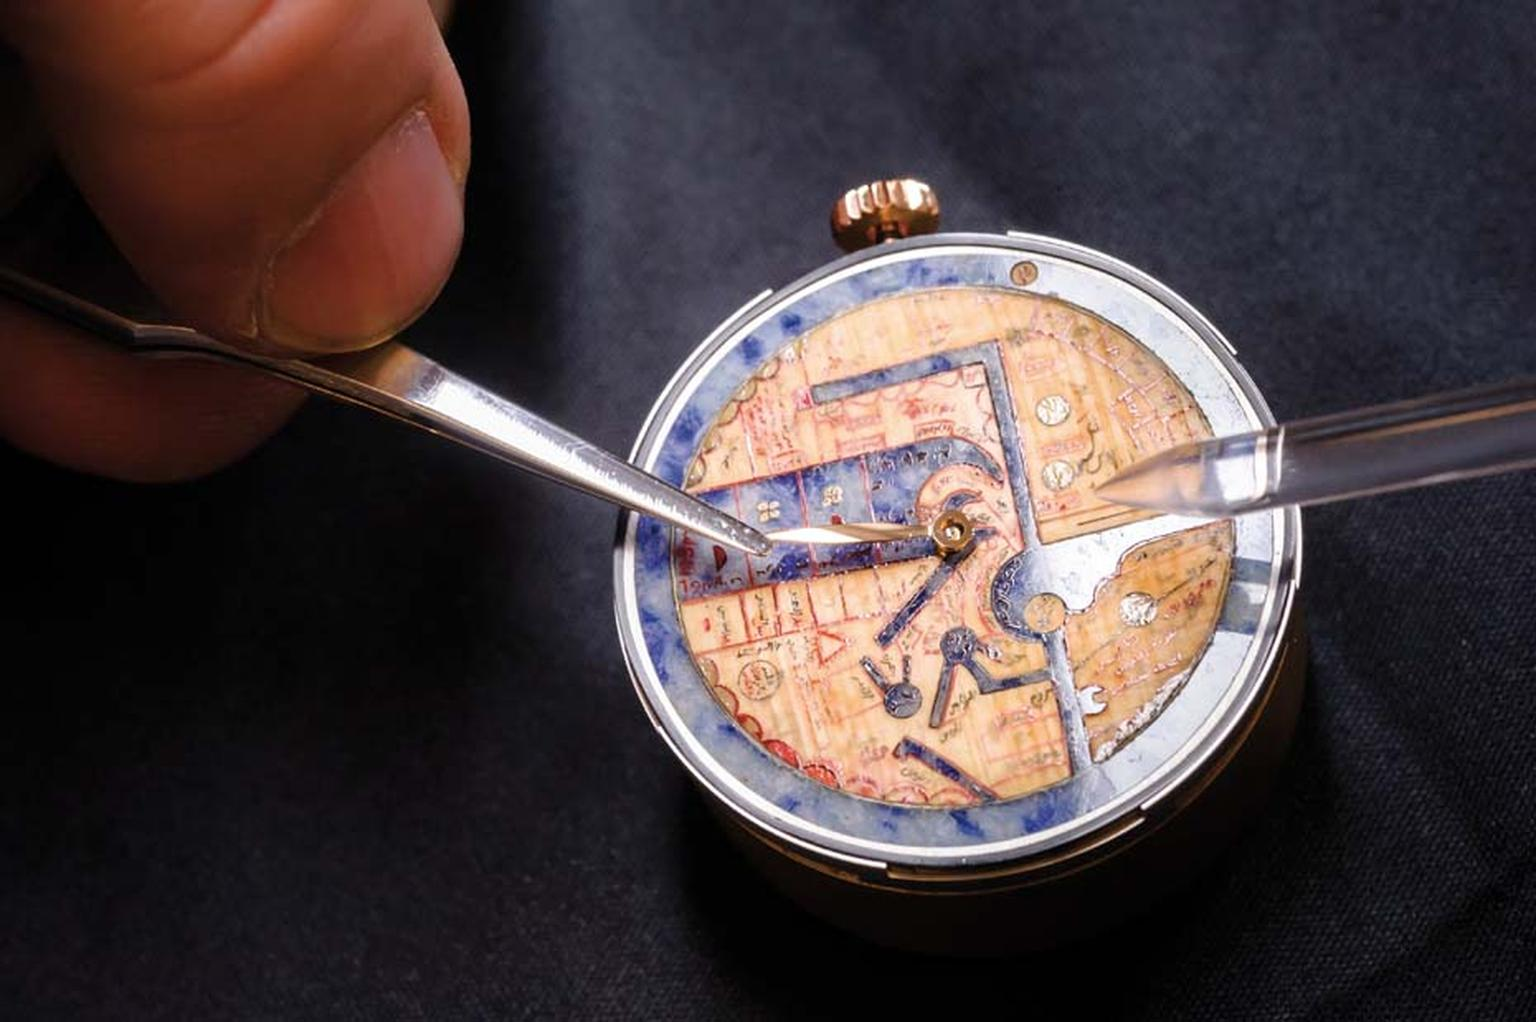 The blue sodalite stone on the dial of the Pearl of Wonders watch has been decorated with miniature inlaid pieces of papyrus to recreate the texture and colour of the original parchment.